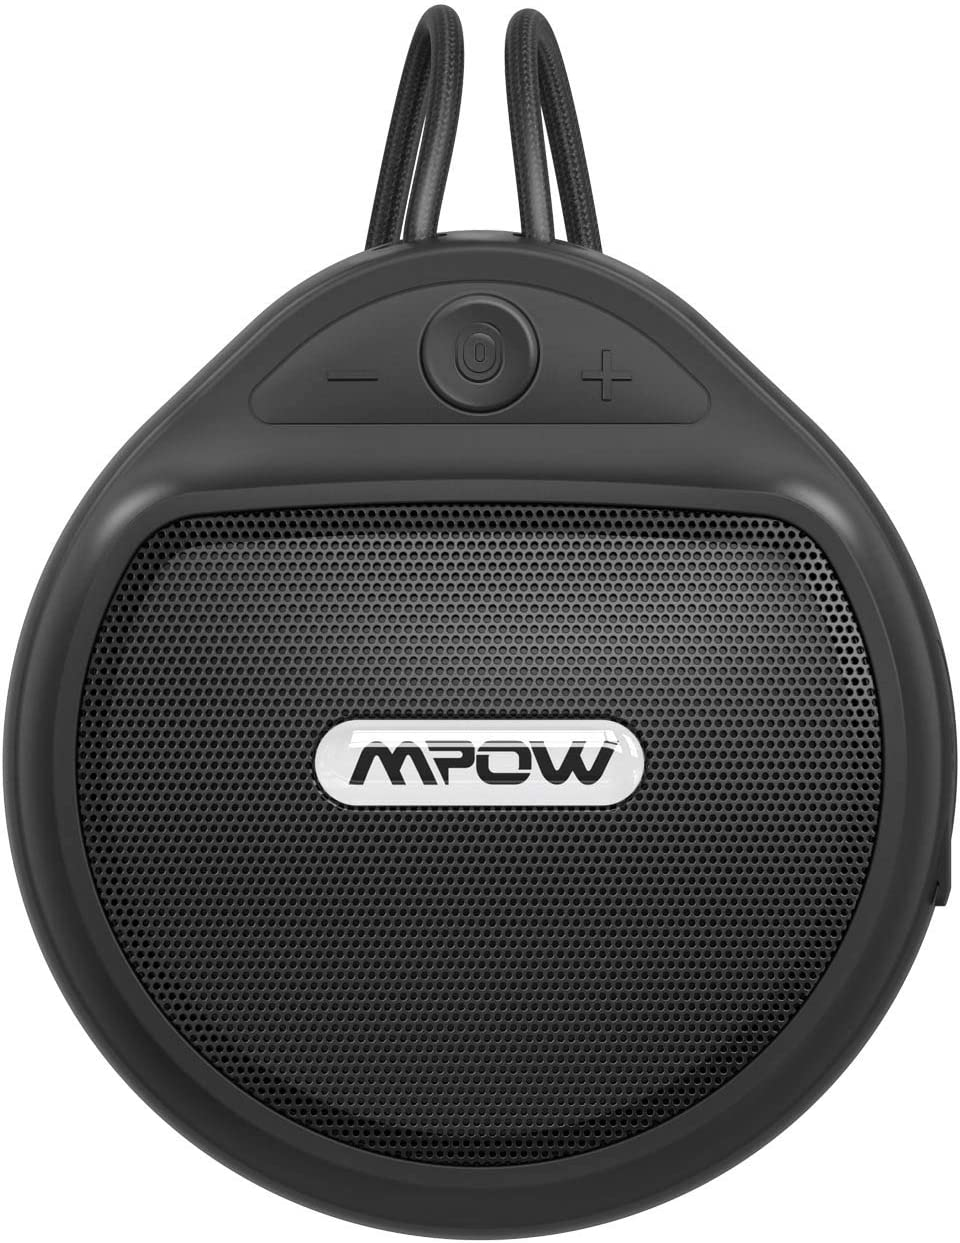 Portable Bluetooth Speaker, Mpow Q5 Waterproof Speaker IPX7, Bluetooth Speaker 5W w/Deep Bass, 6H Playback, TWS, Shower Speaker w/Suction Cup, for cellphones, Tablets, PC